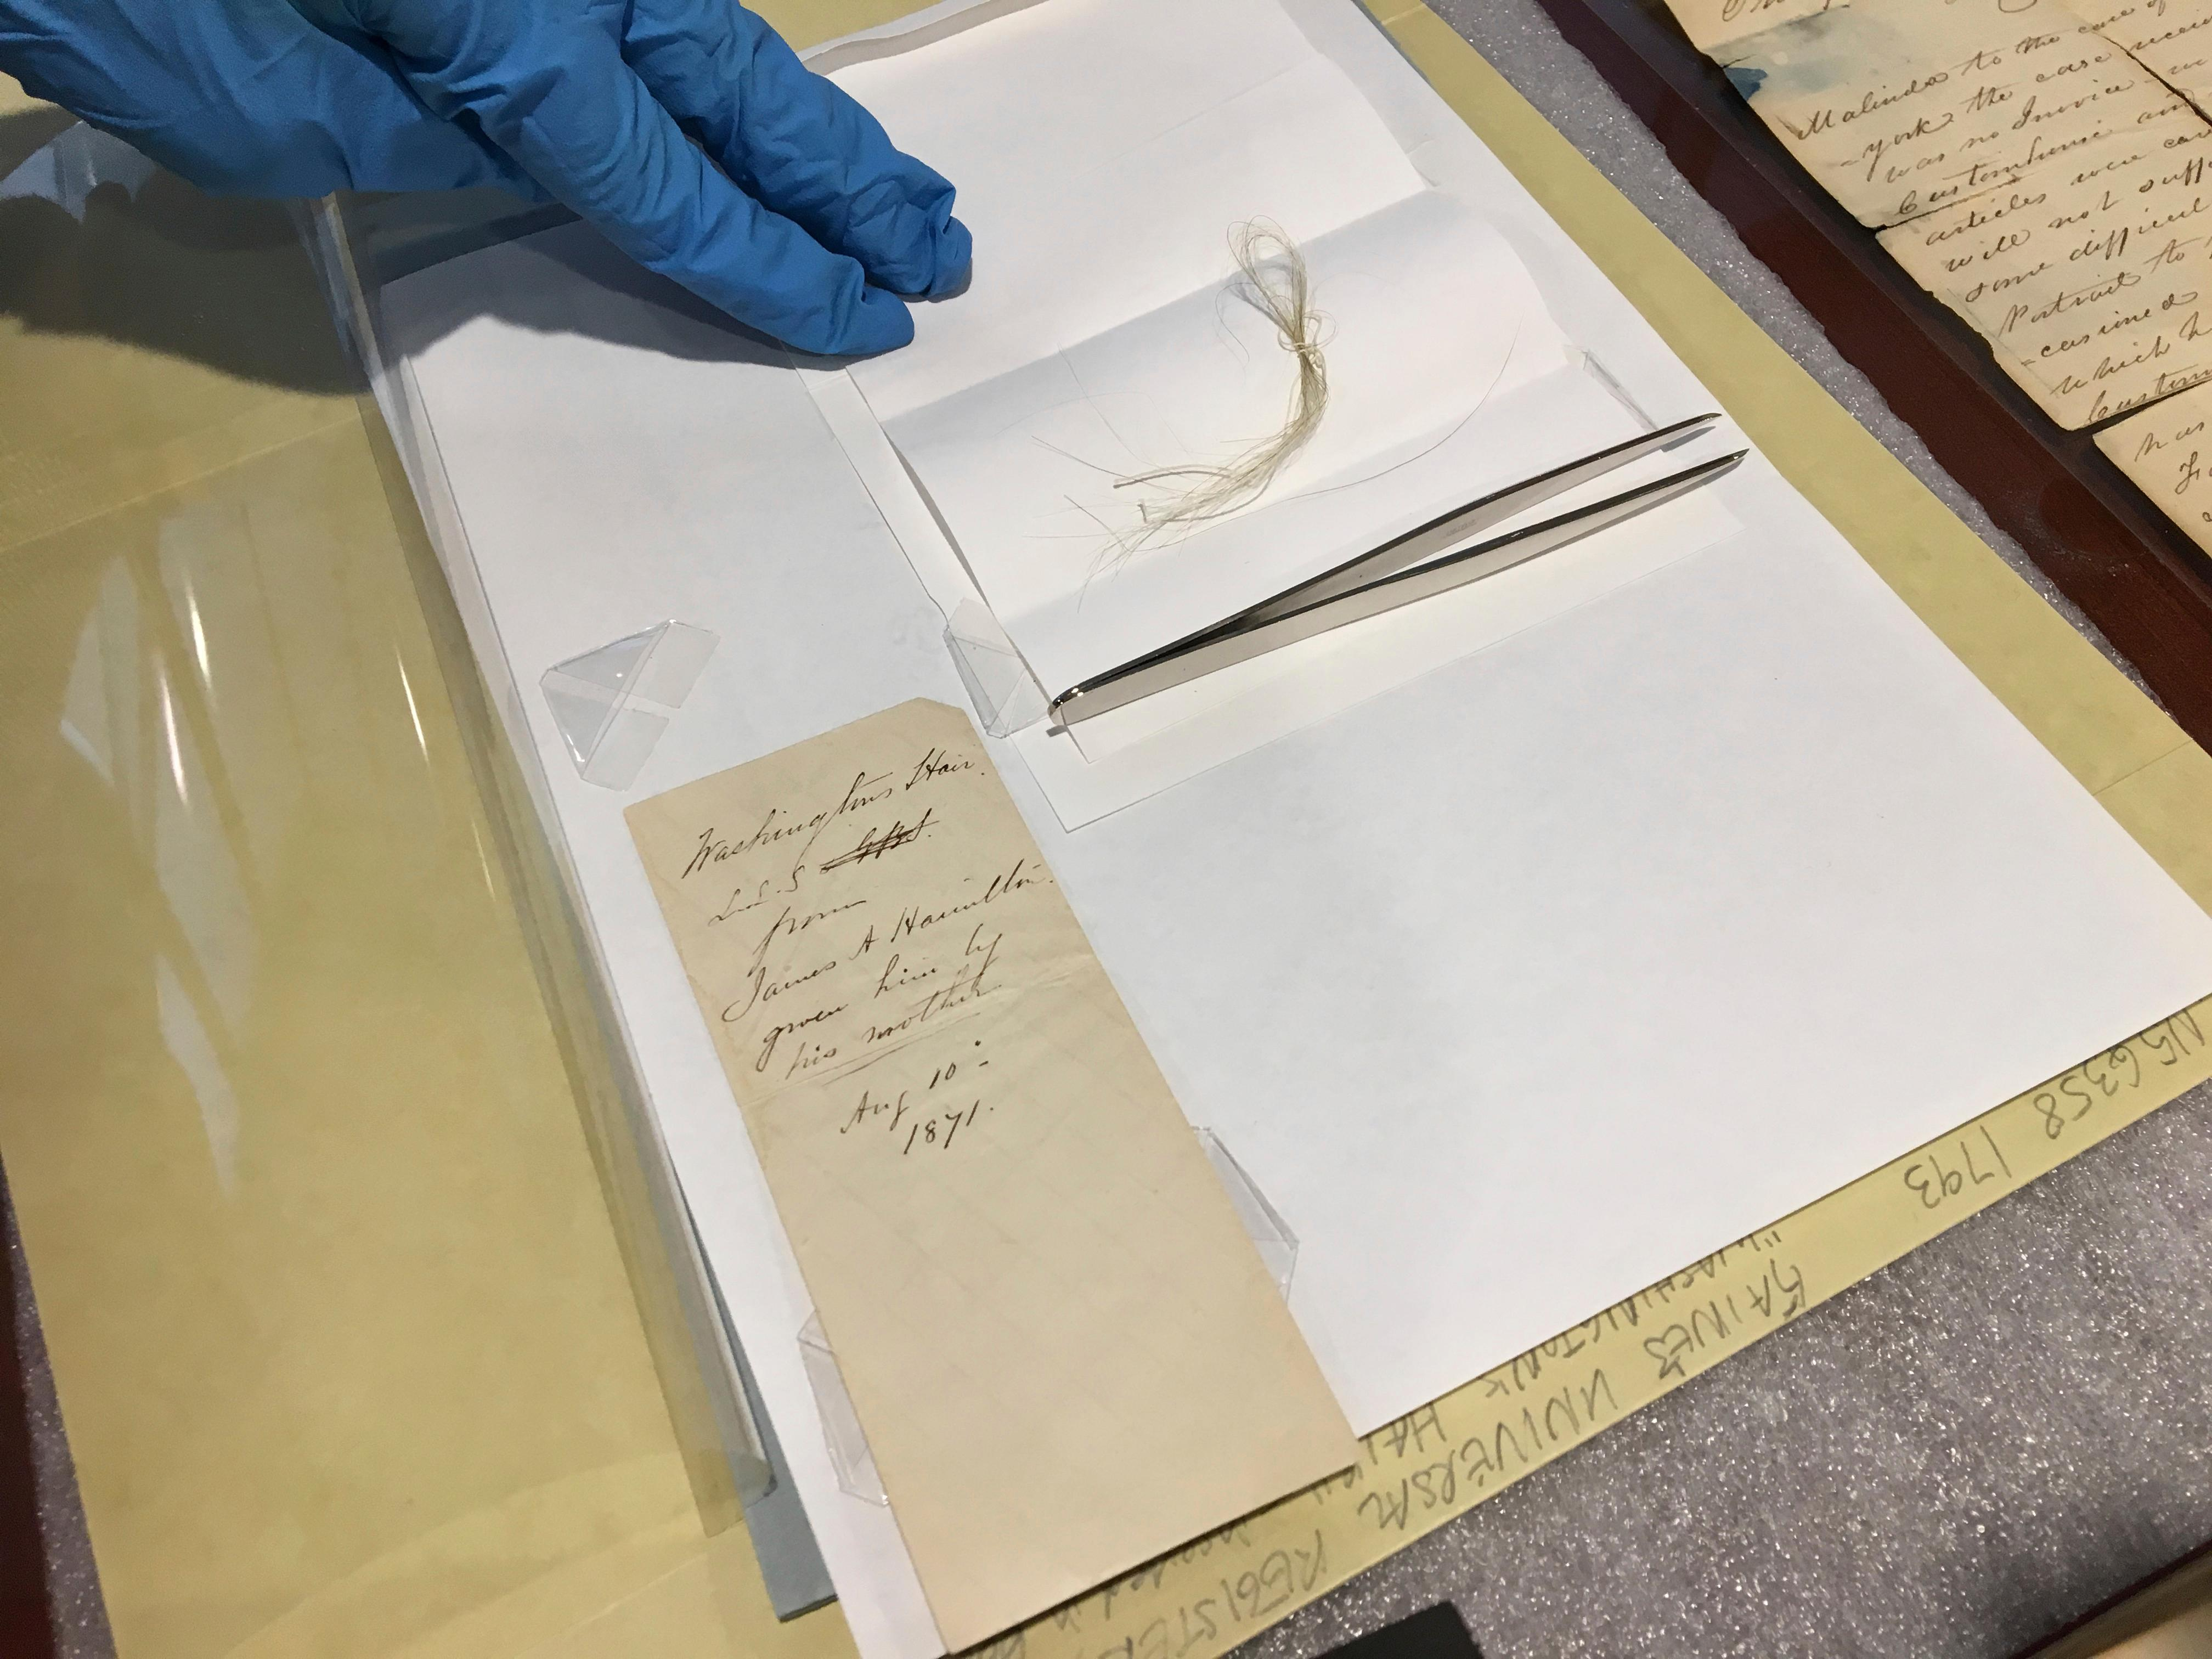 In this Feb. 14, 2018 photo, a lock of George Washington's hair and the envelope that contained it are seen on a table in the Union College library in Schenectady, N.Y. John Myers, the college's catalog and metadata librarian, discovered the hair strands in a yellowed envelope he'd found in a grimy old leather-bound almanac in the school's archives. (AP Photo/Mary Esch)